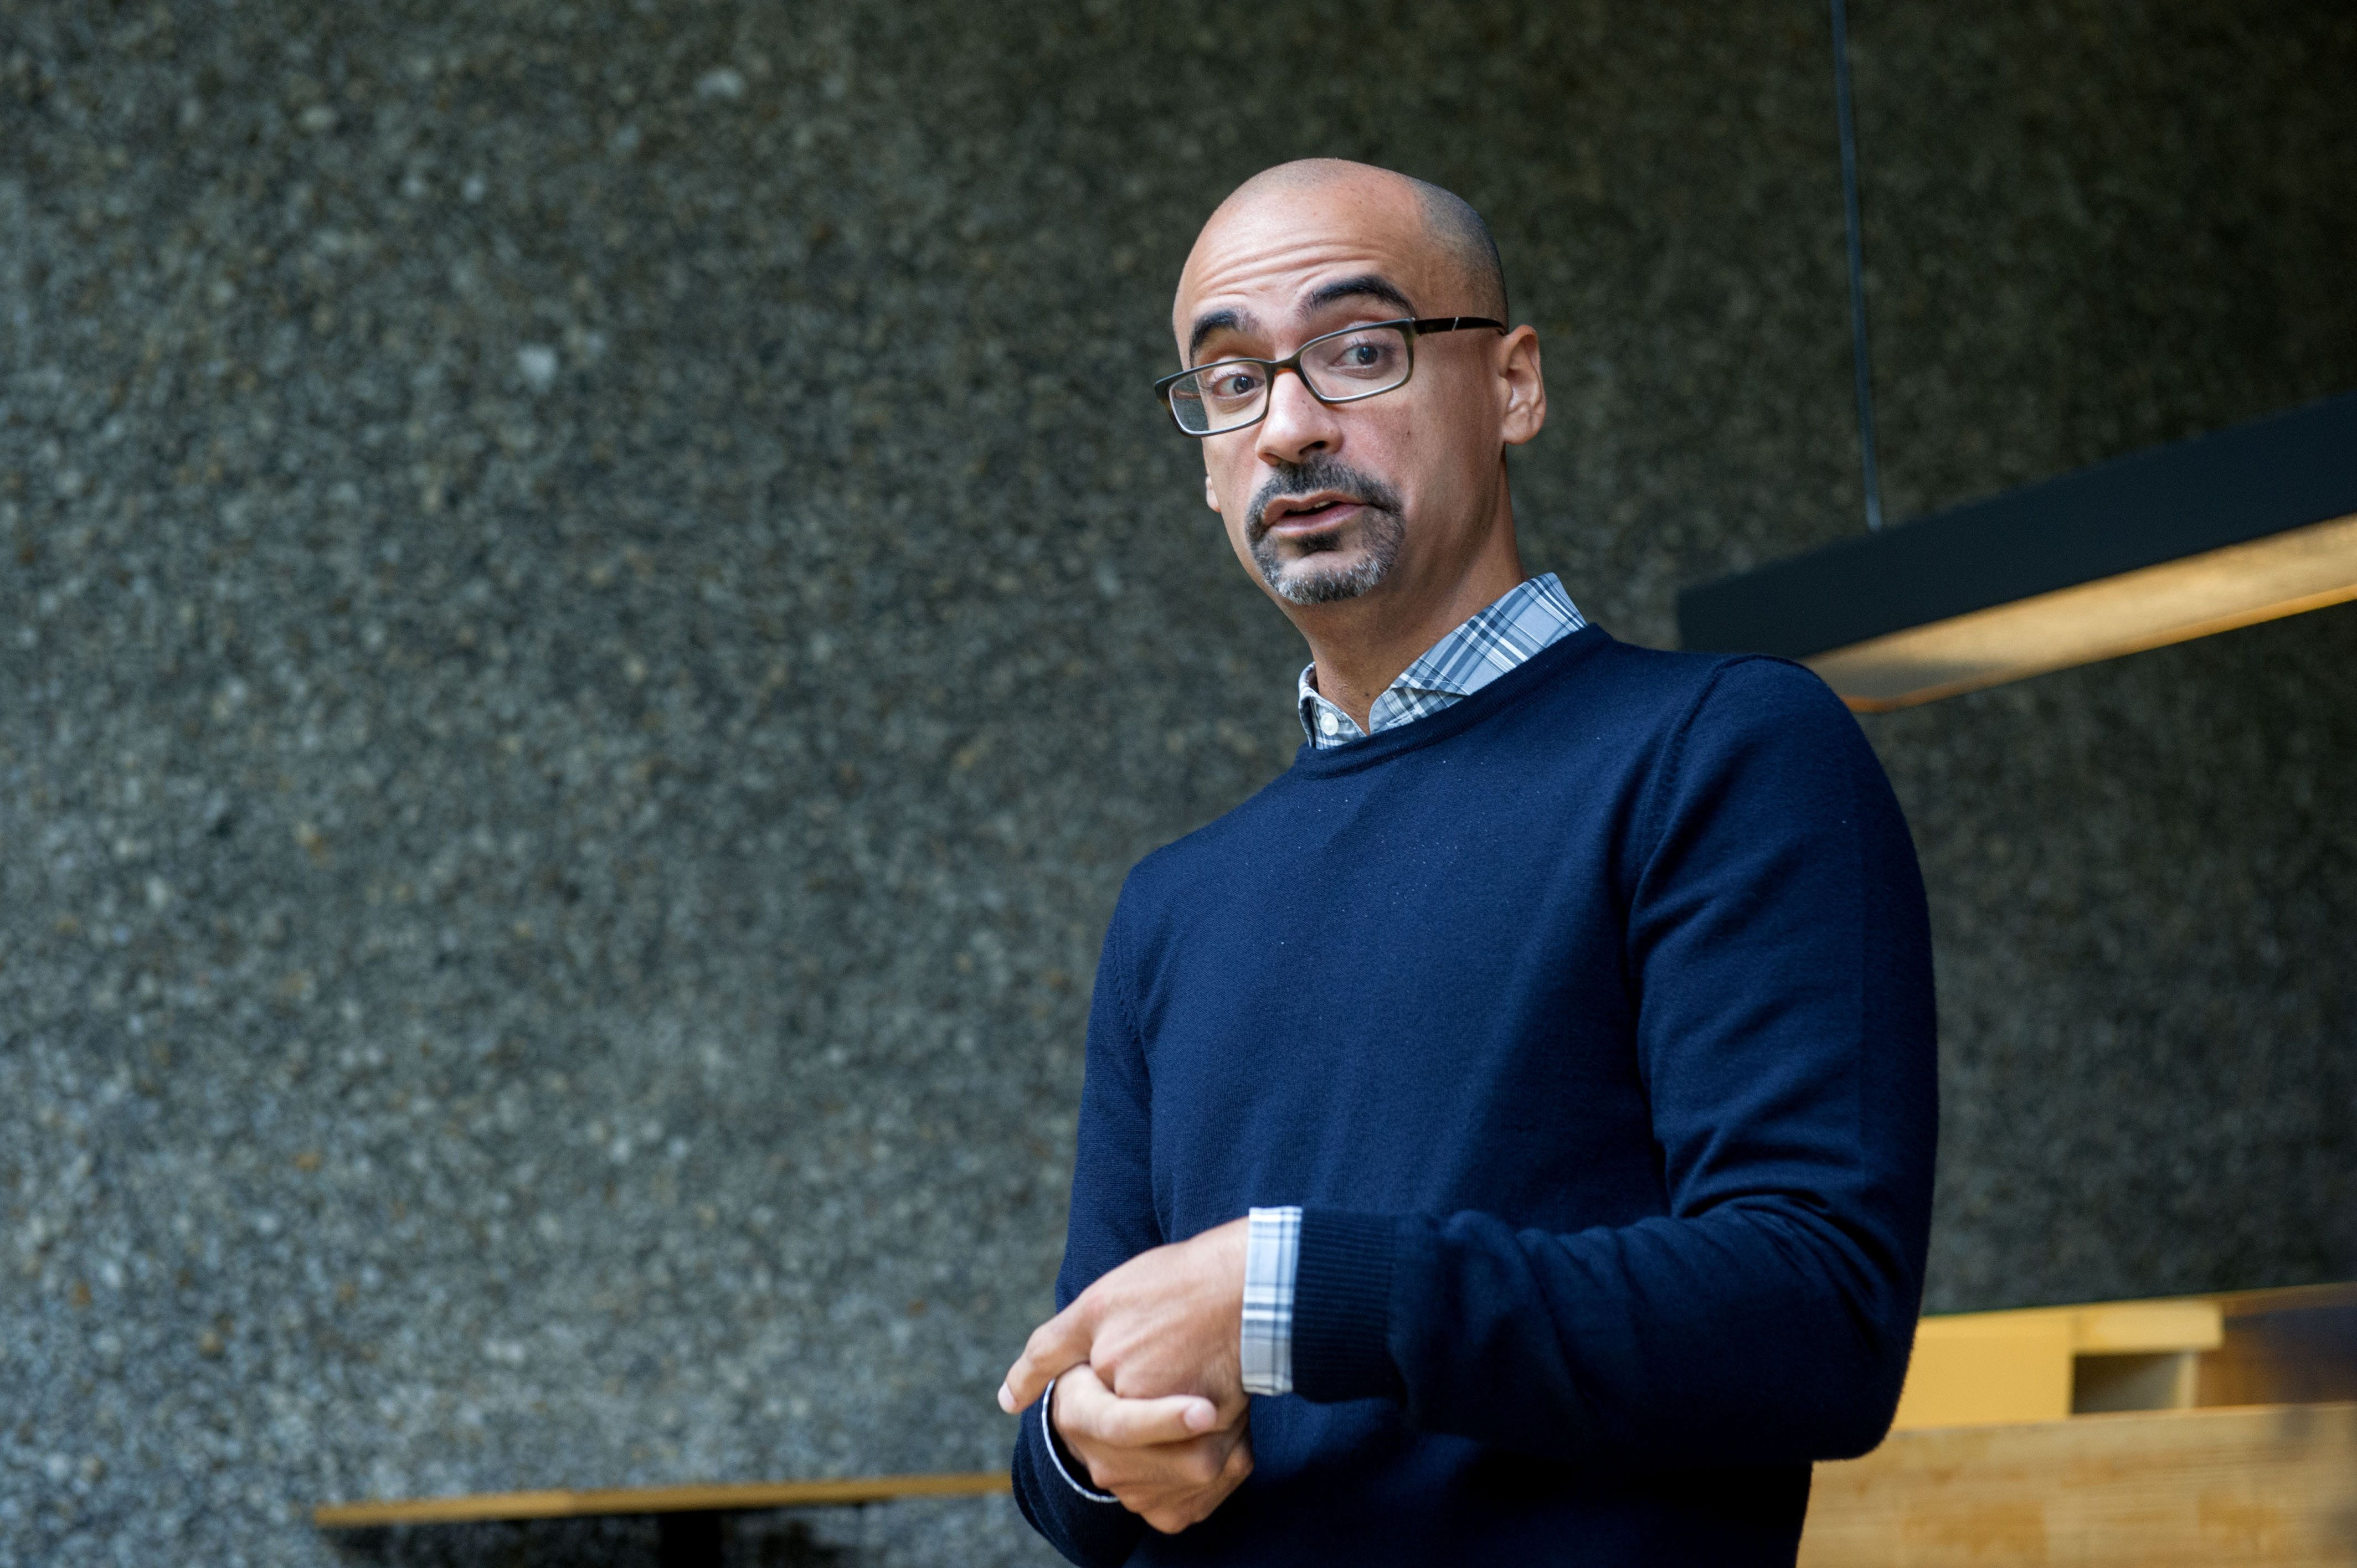 MIT Clears Junot Díaz After Sexual Misconduct